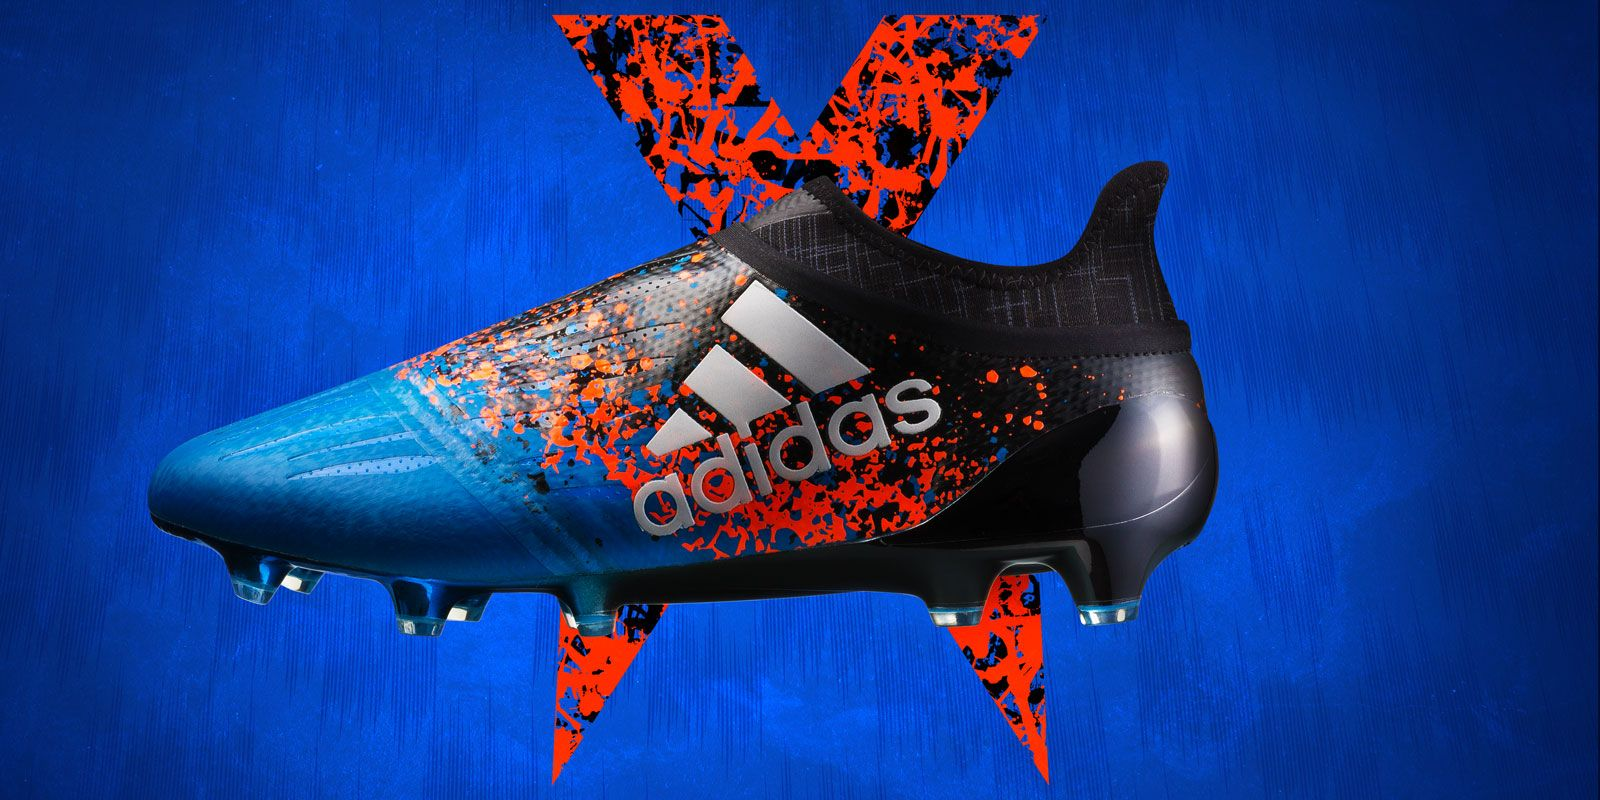 Adidas Boots HD Wallpapers : Get Free top quality Adidas Boots HD Wallpapers  for your desktop